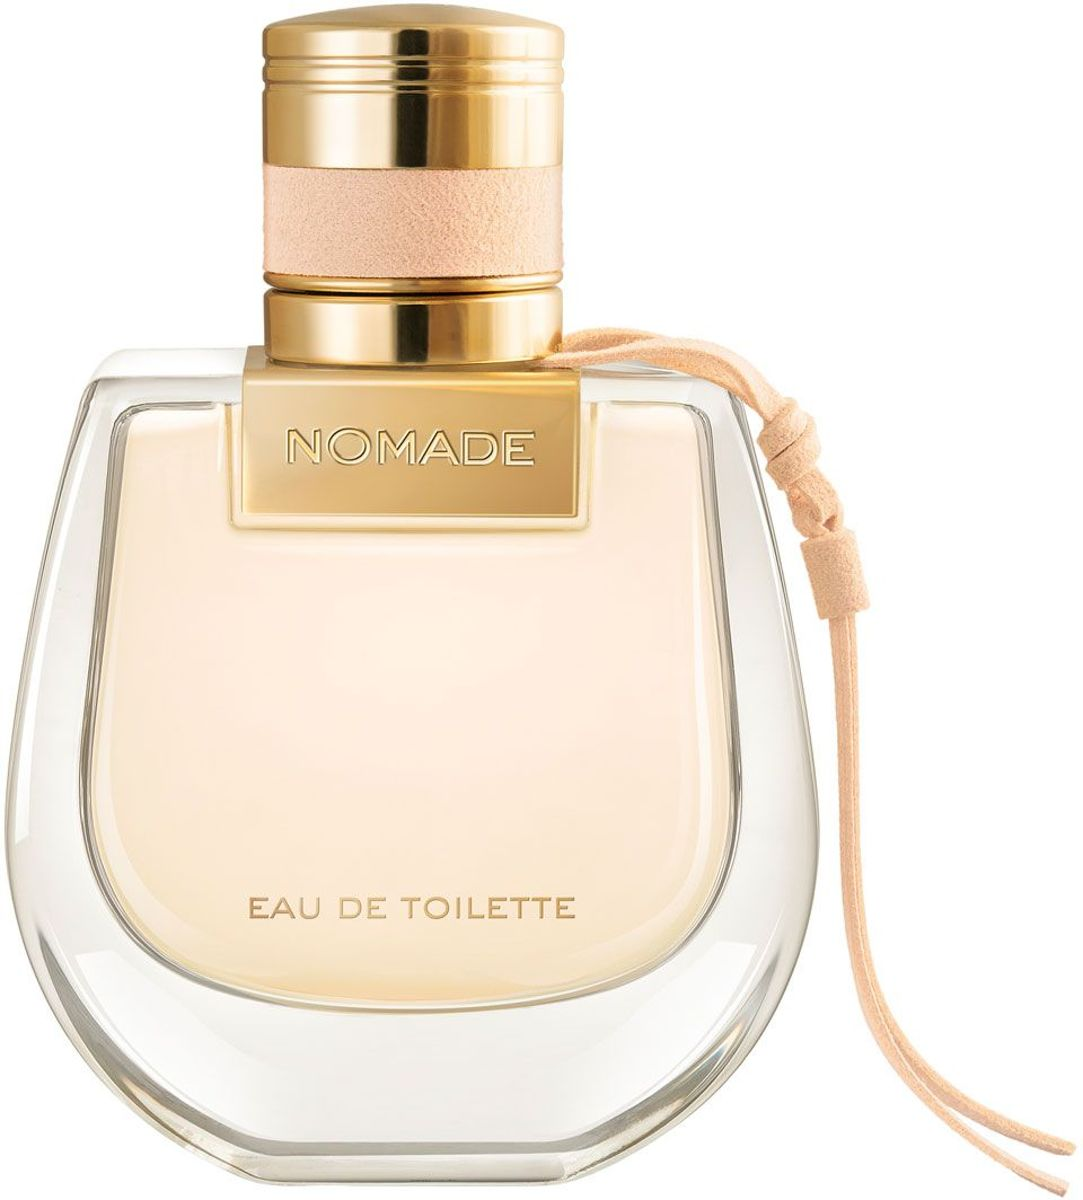 Chloe NOMADE edt spray 50 ml